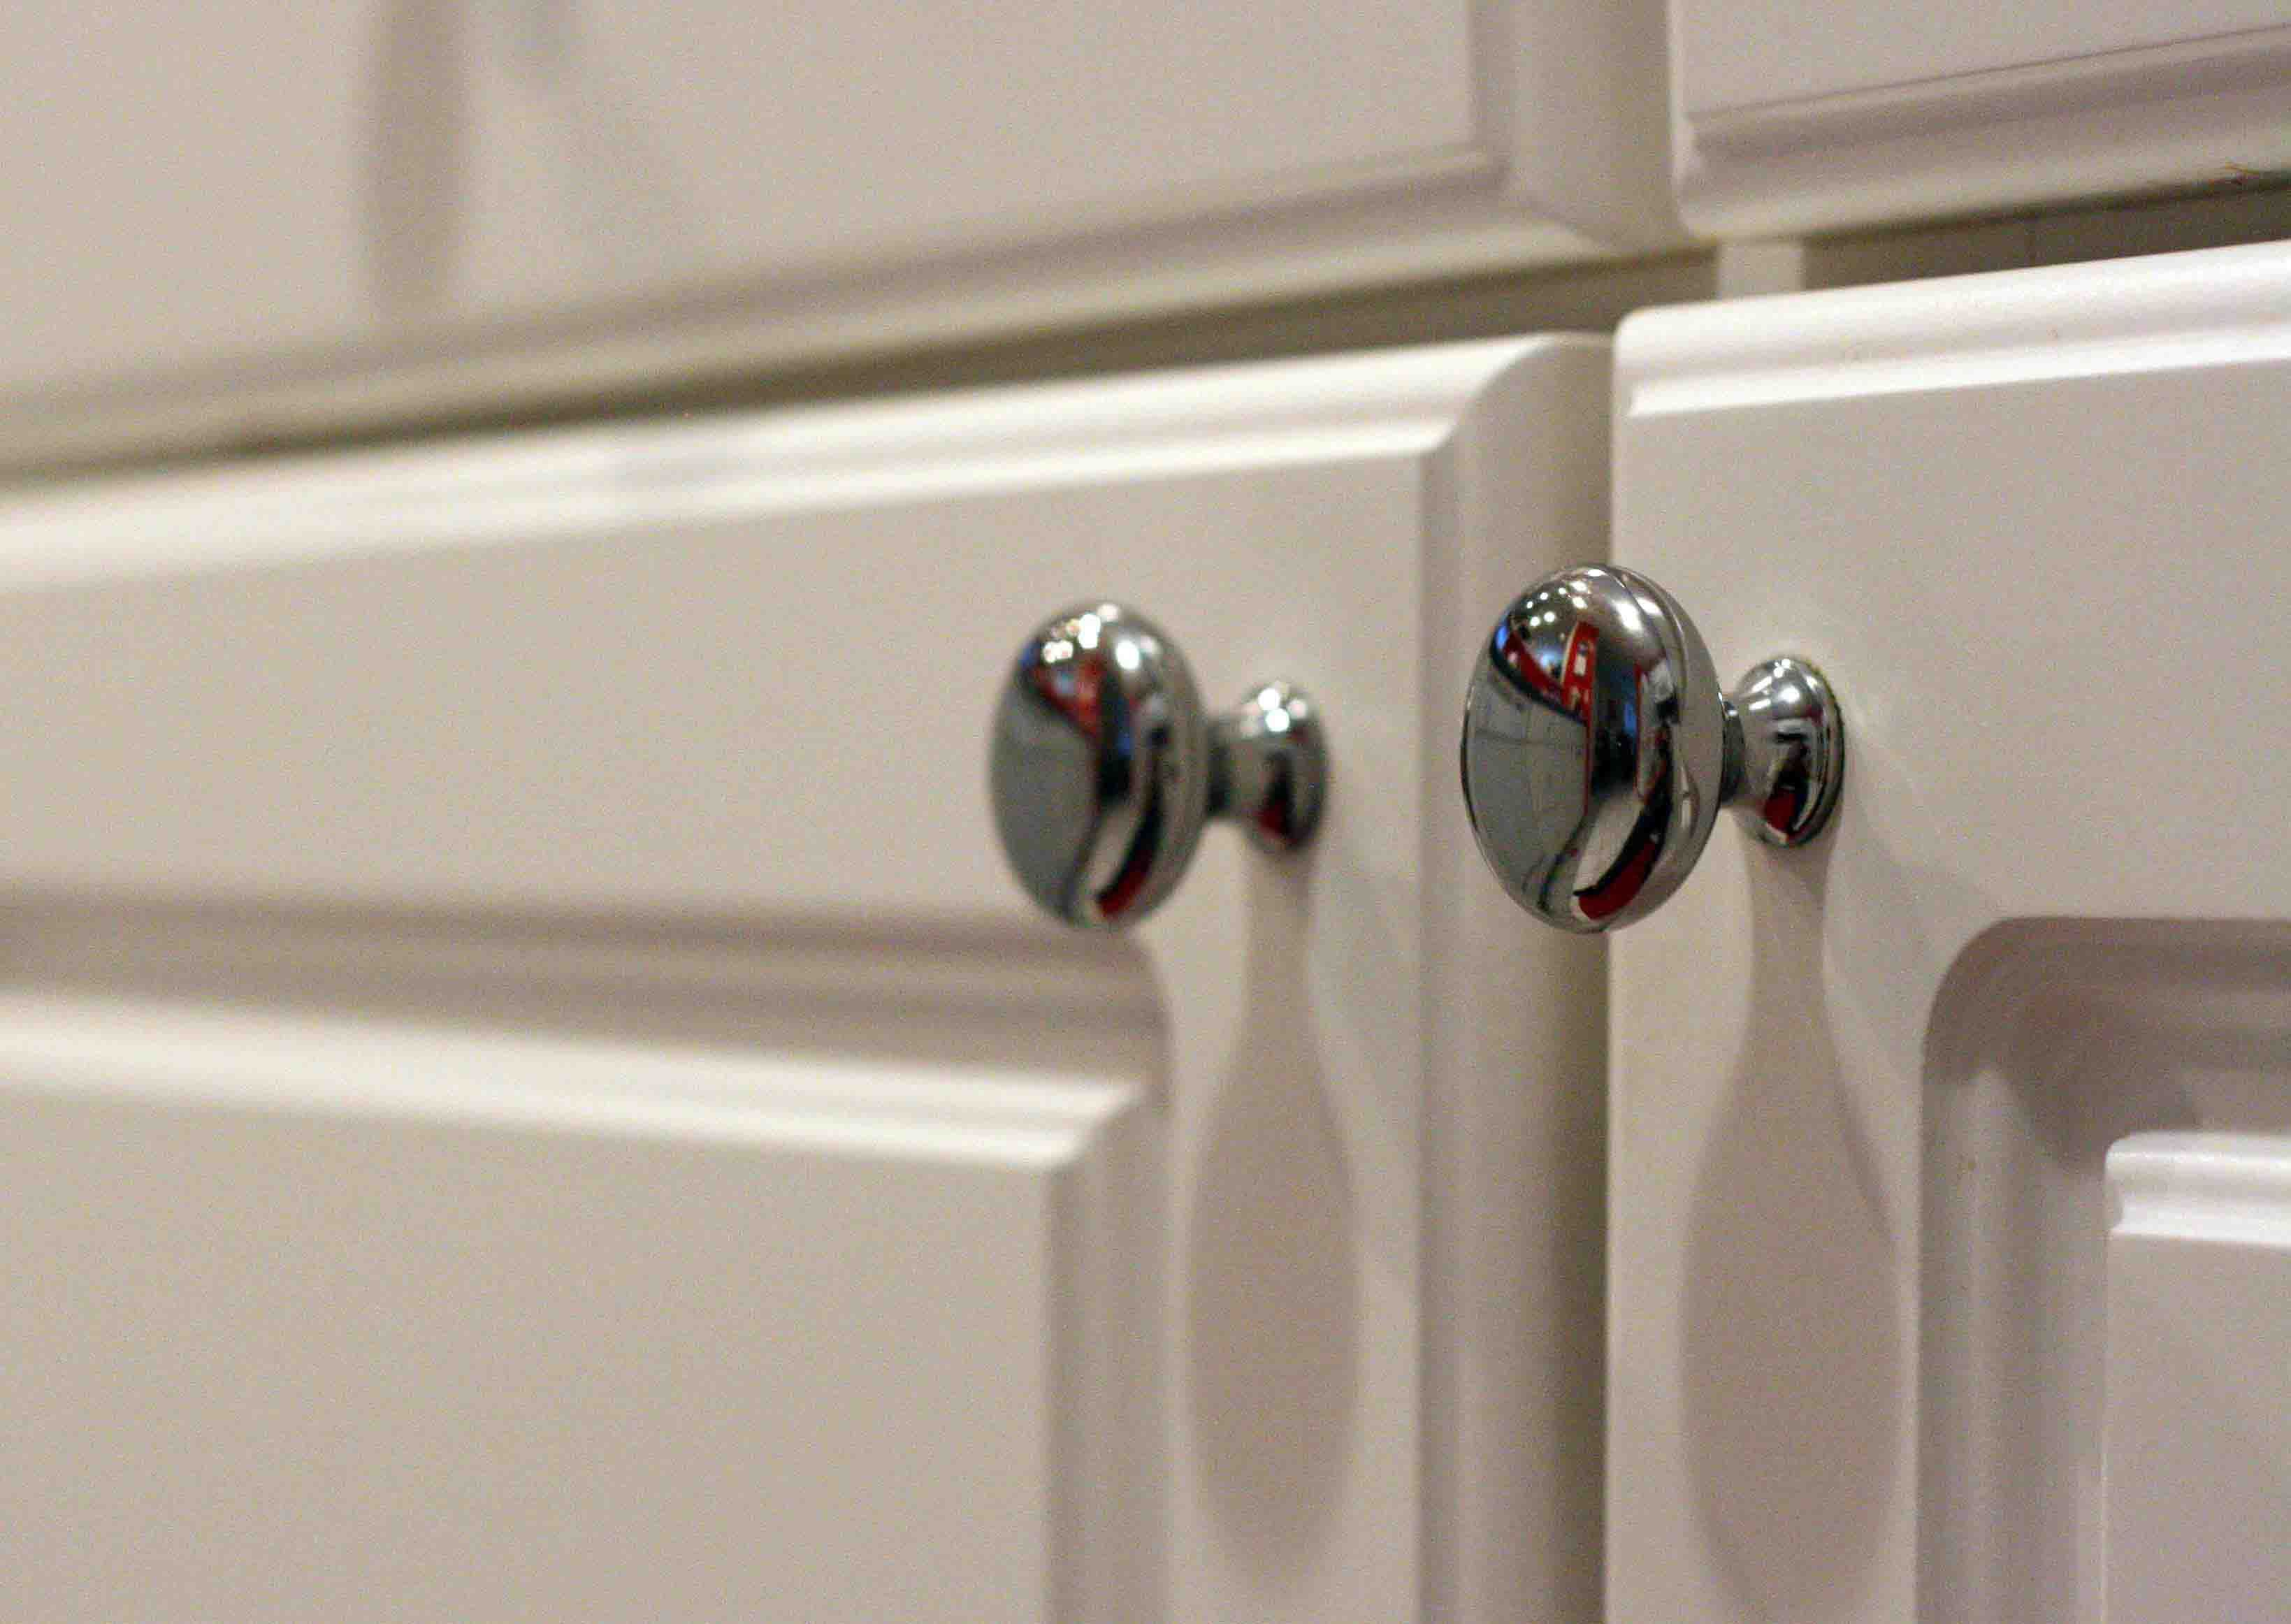 Impressive Kitchen Cabidoor Knobs Handles 3278 X 2324 142 Kb Jpeg